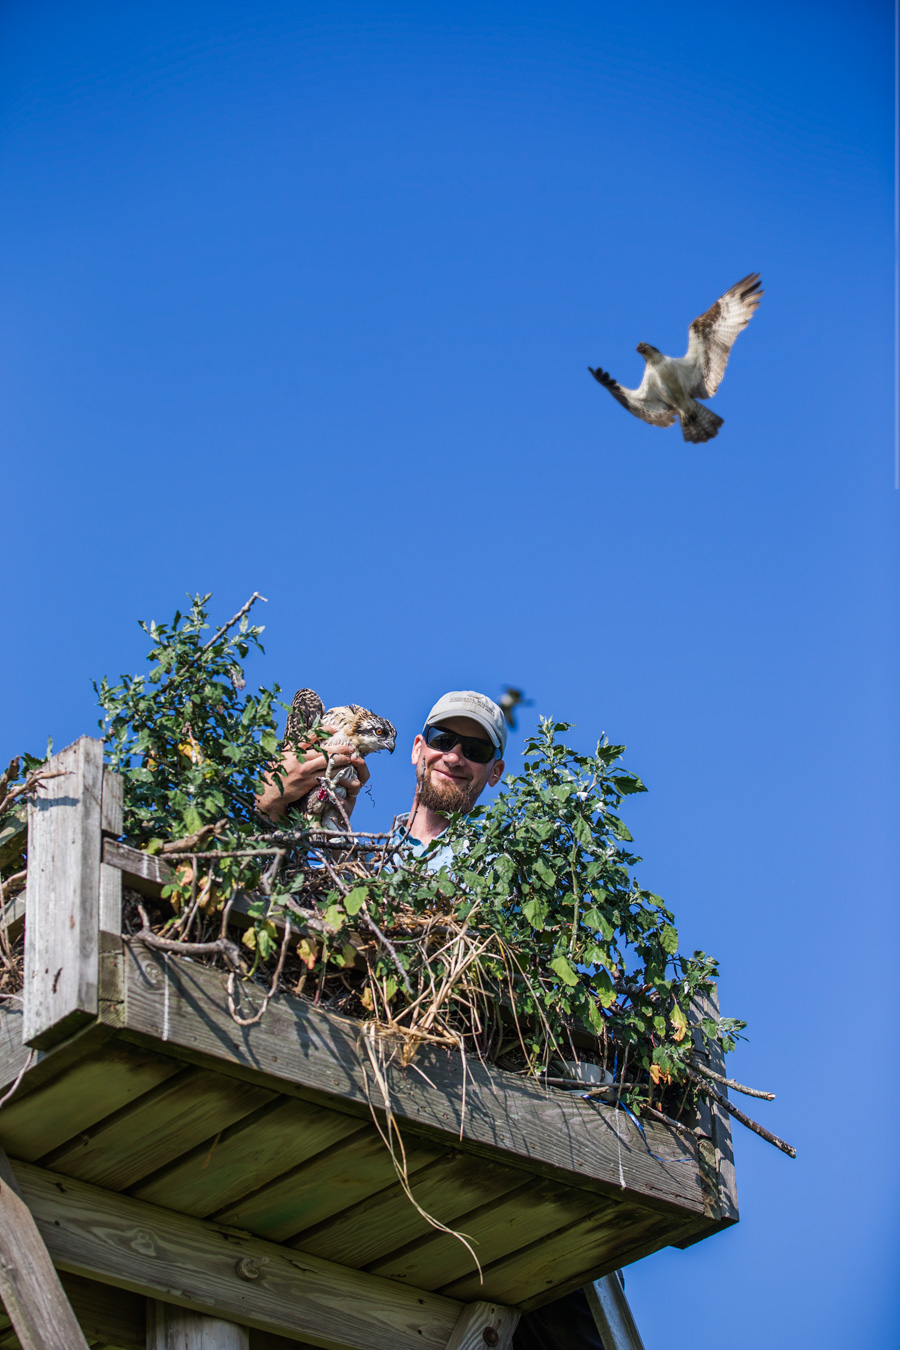 You might think Ben Wurst's amazing life as the Osprey Hero for the State of New Jersey is all kitten whispers and tickle fights as he snuggle adorable young Osprey when he cares for their nests....